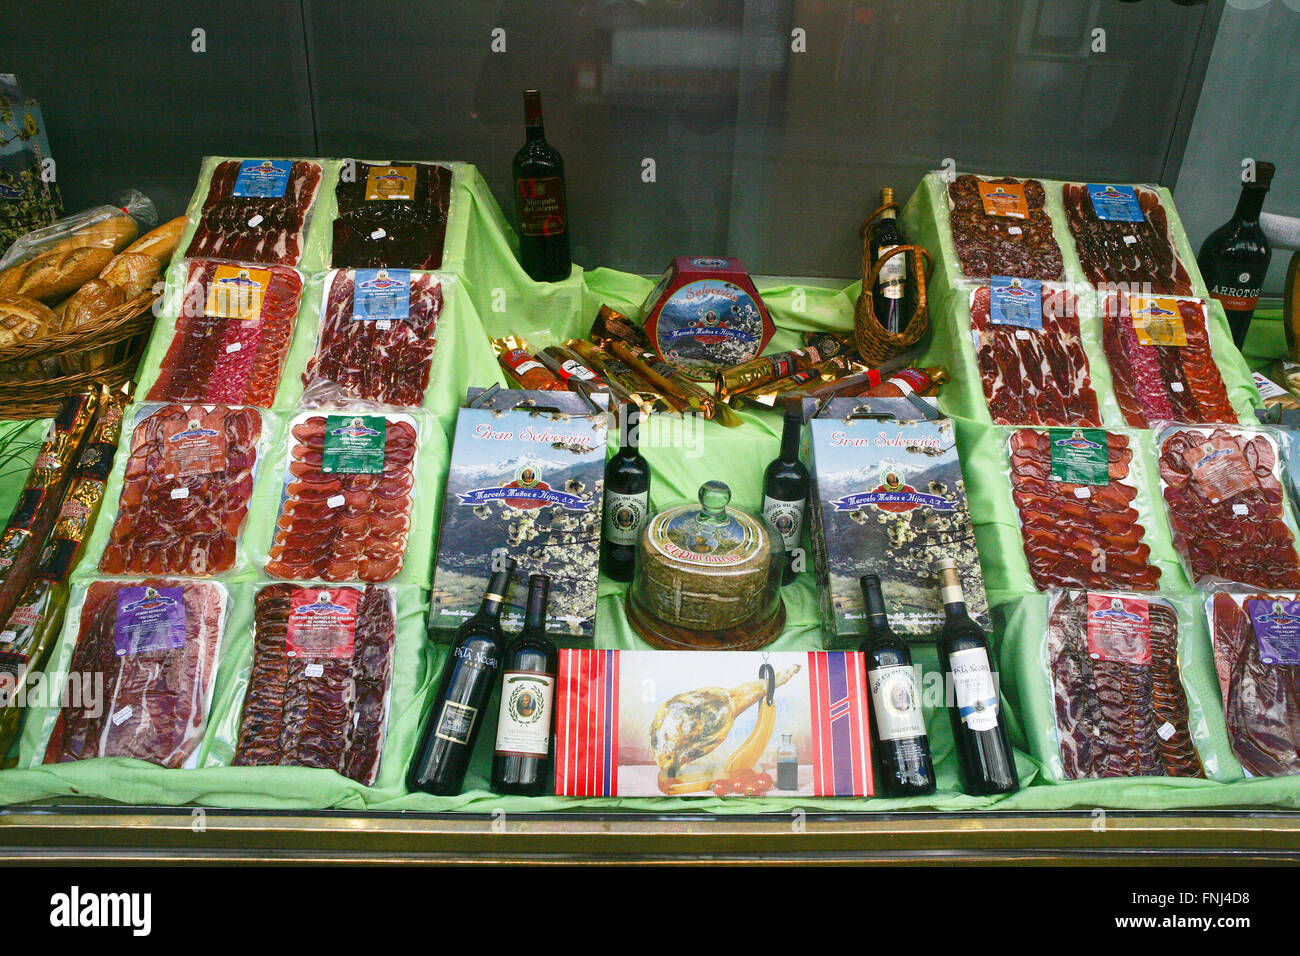 Spanish ham sausage bacon cured meats jamon for sale Butcher's window Chacuterie,  Madrid Spain - Stock Image